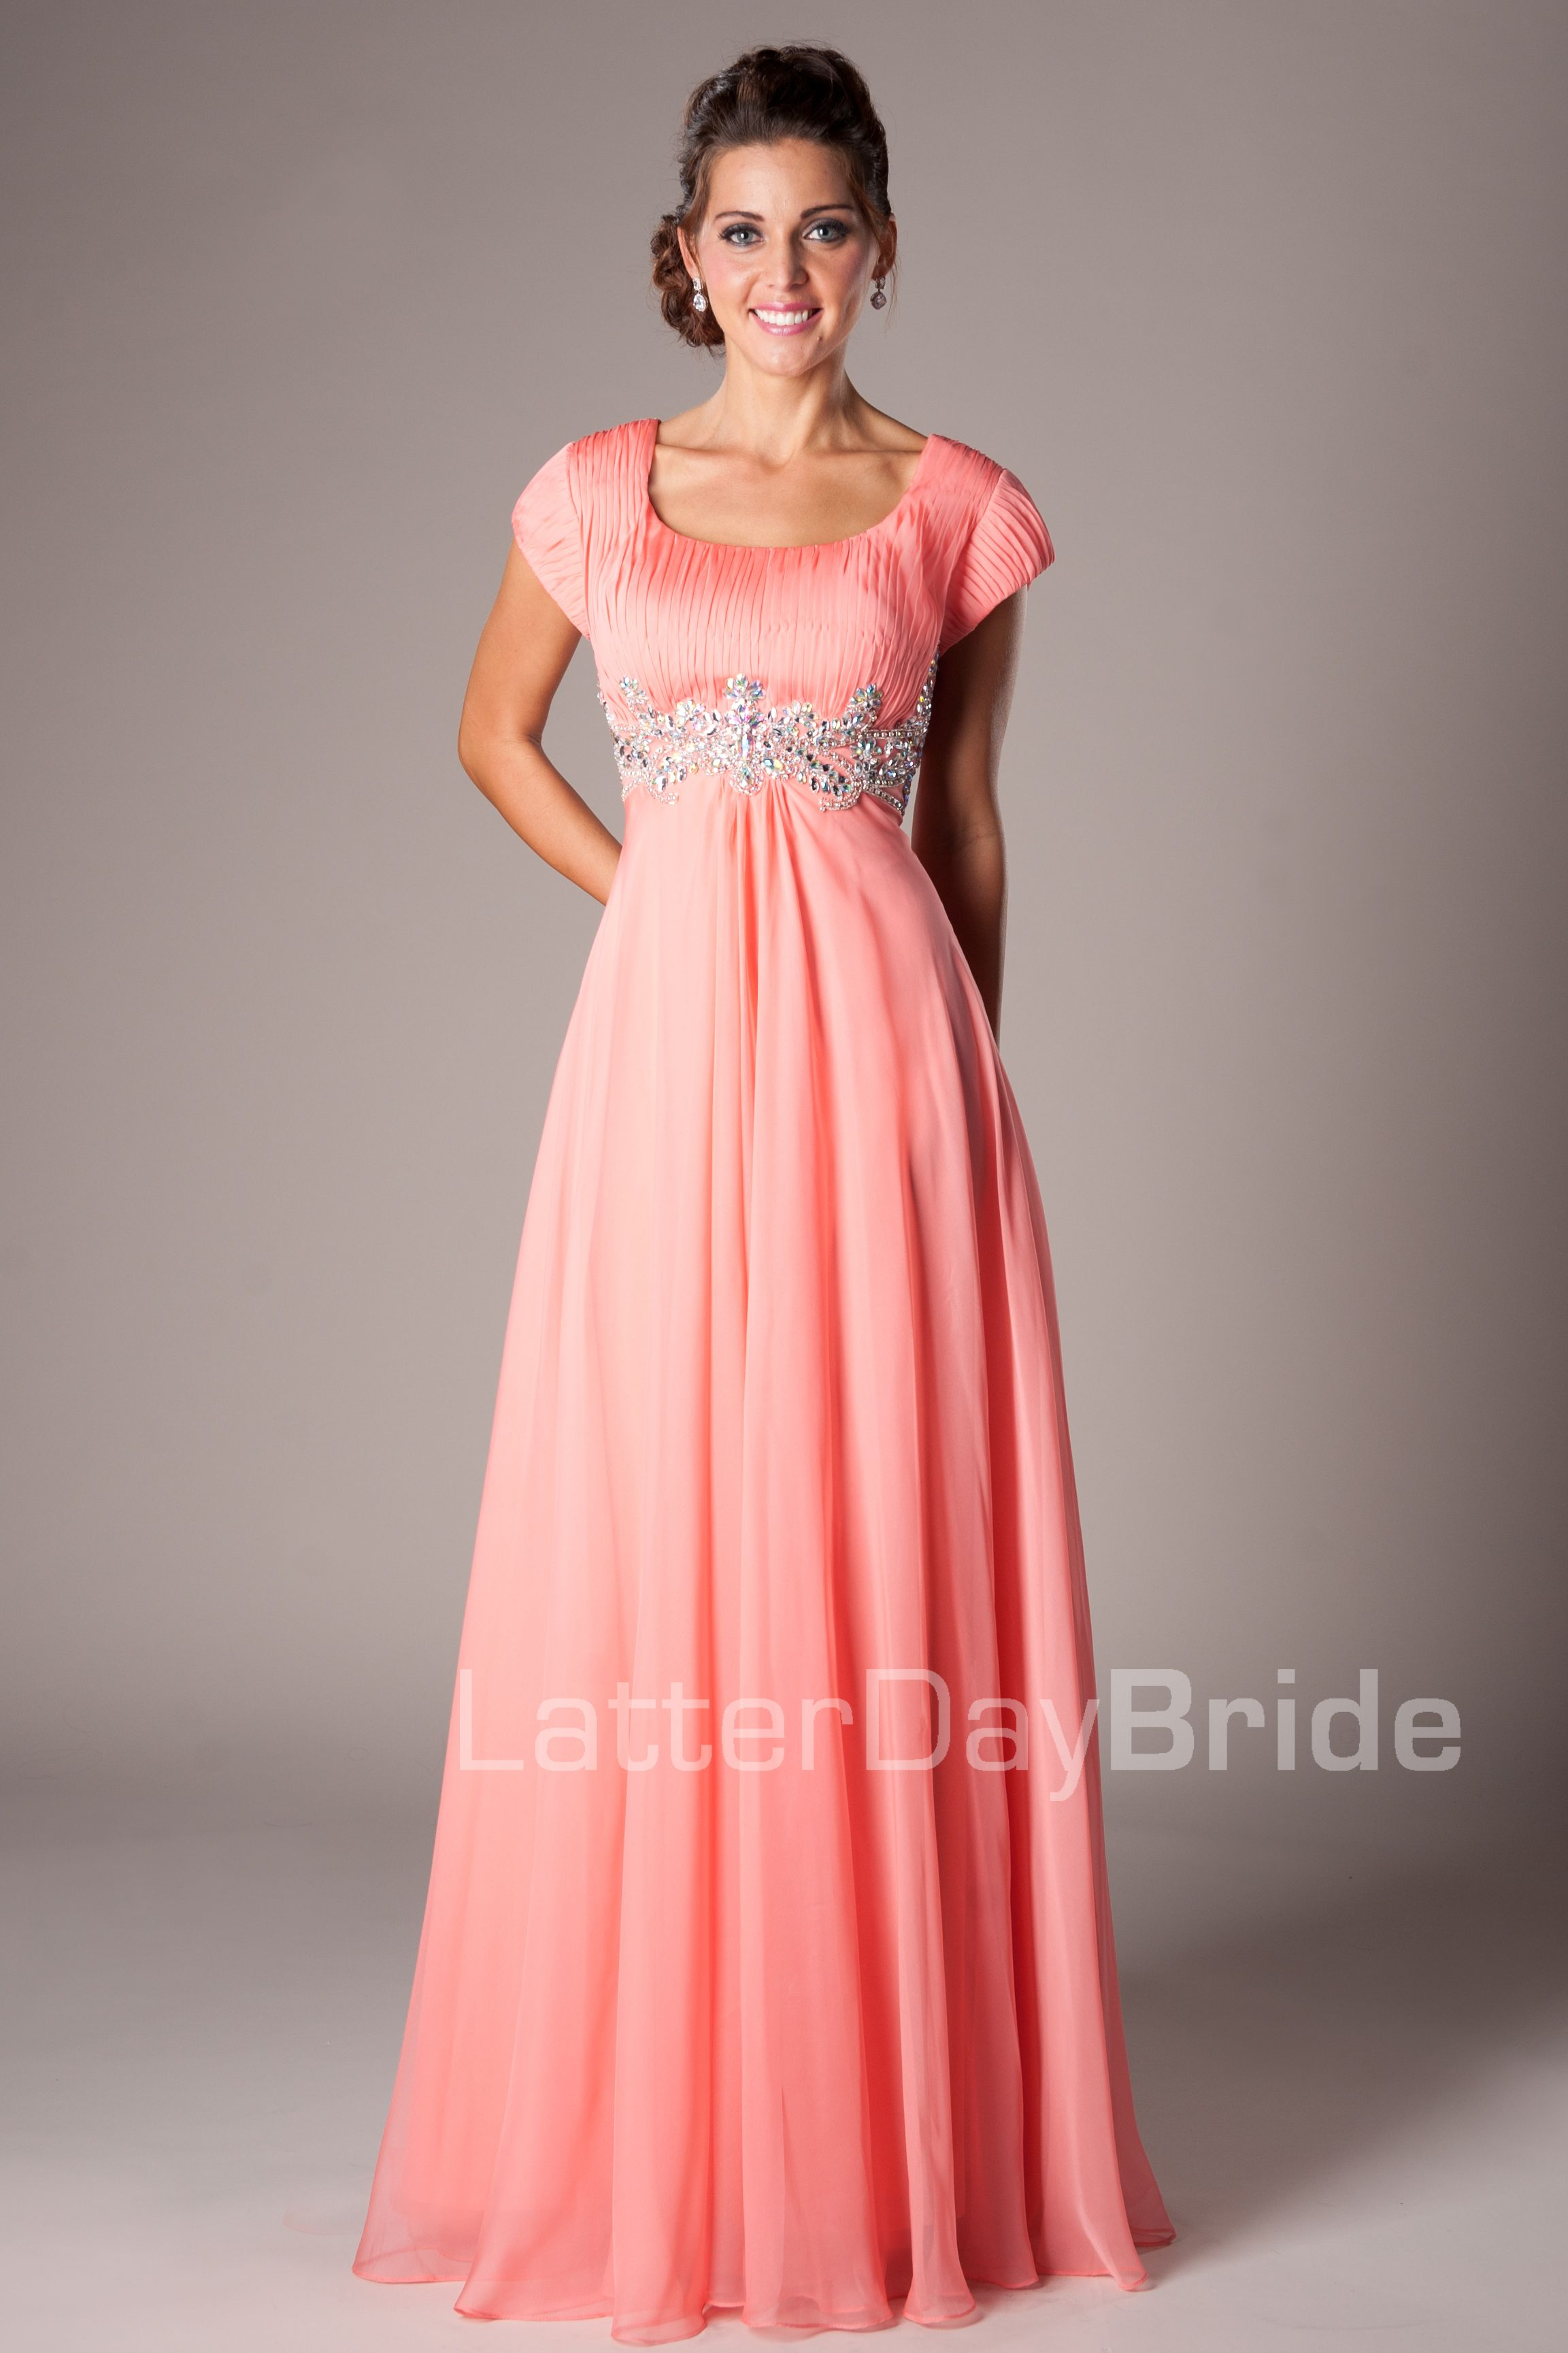 Modest Prom Dresses Prom Homecoming Formal Dance Modest - Melanie #modestprom